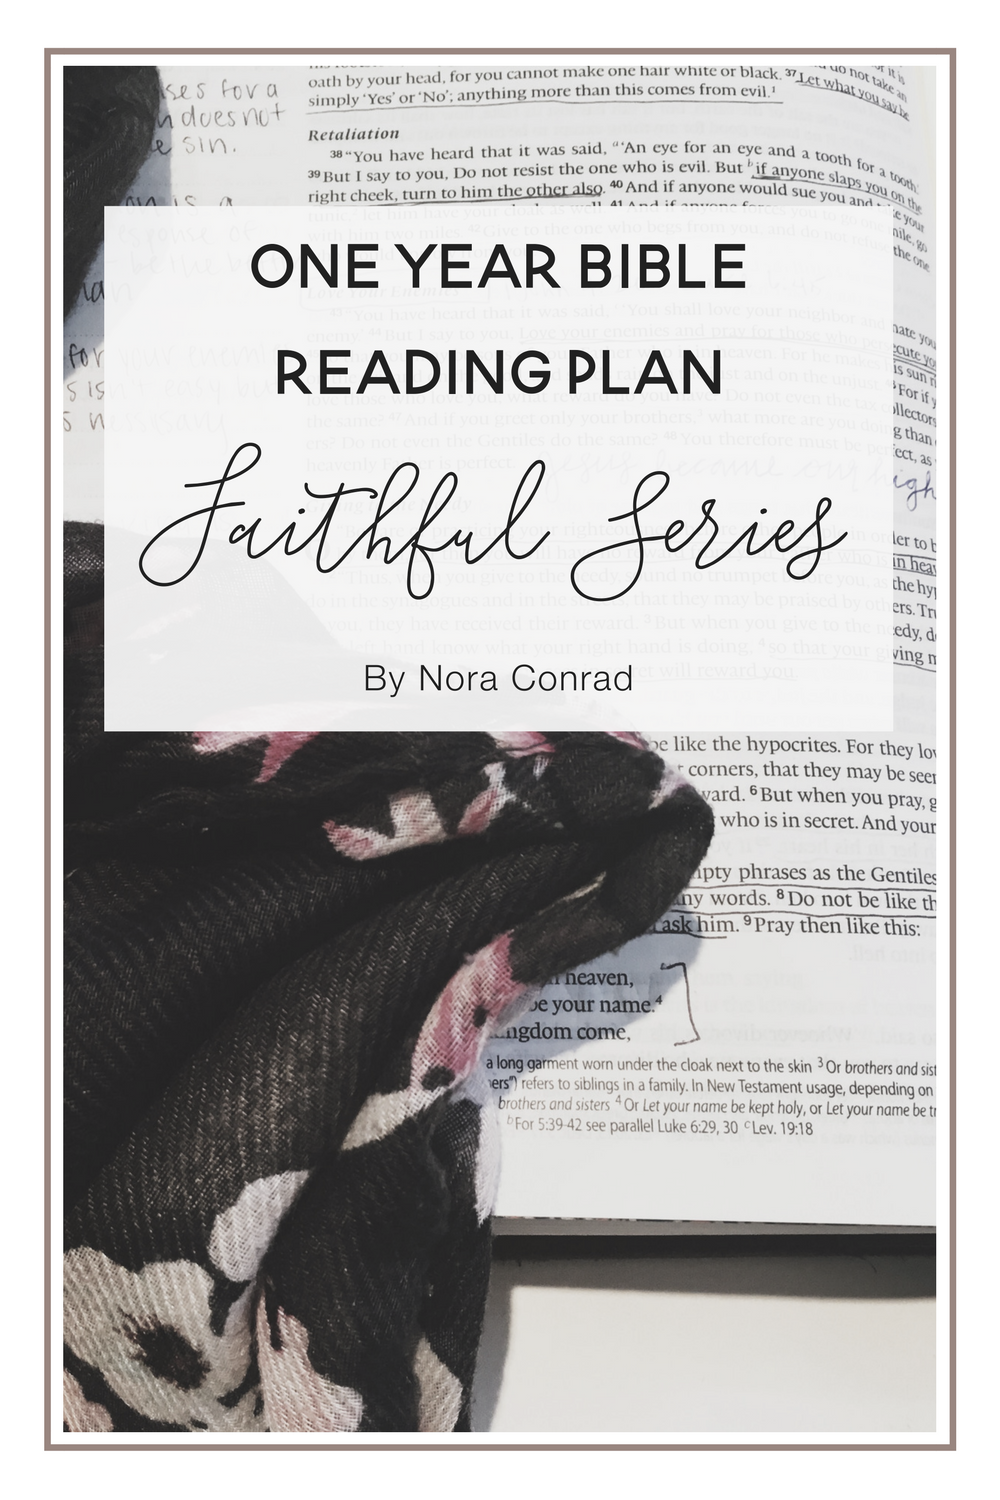 One Year Bible Reading Plan (Faithful Series) — Nora Conrad